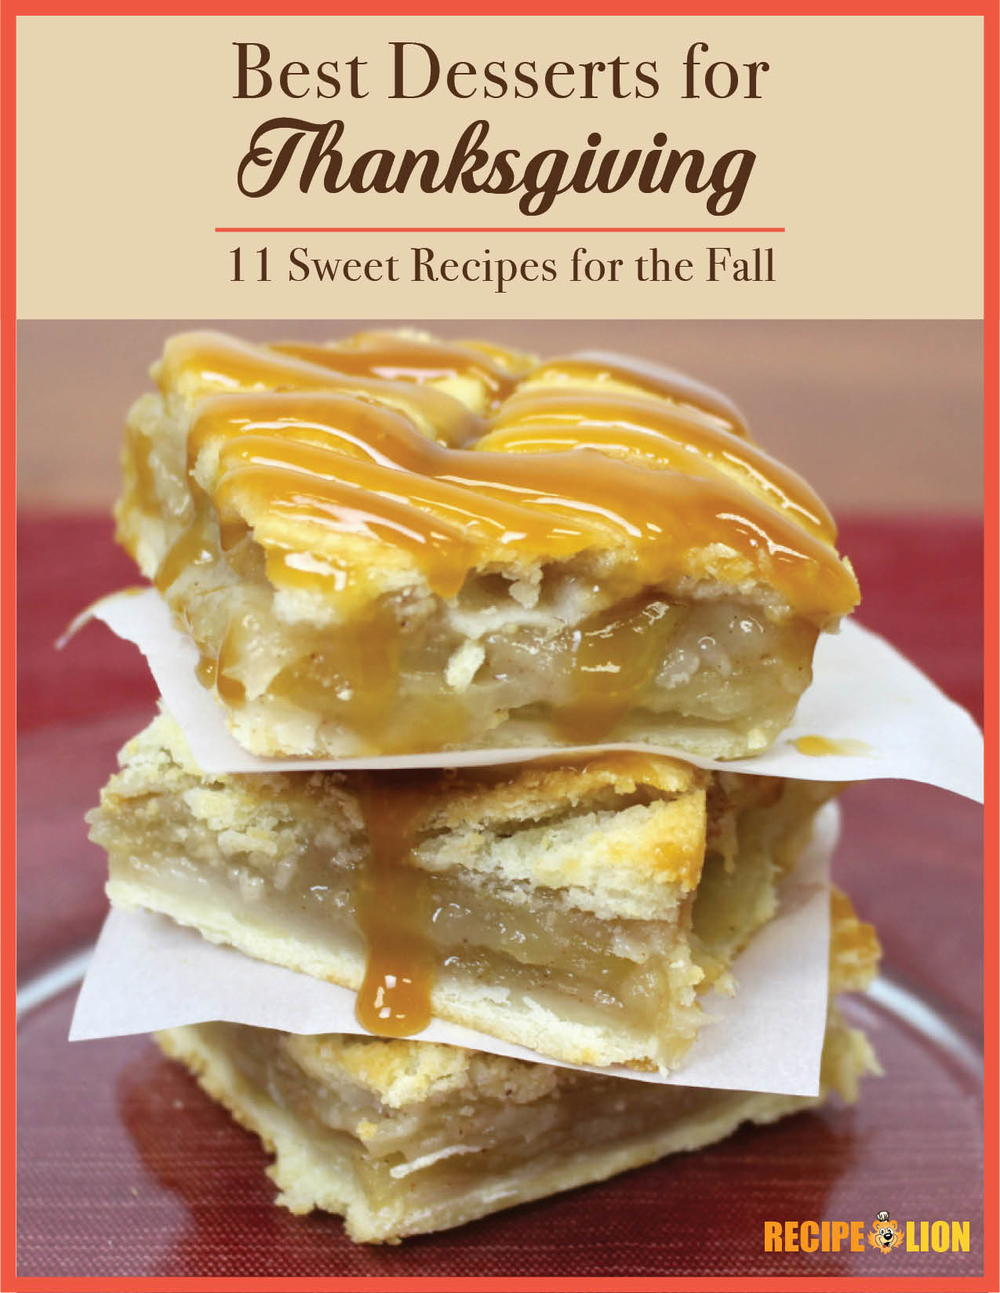 Quot The Best Desserts For Thanksgiving 11 Sweet Recipes For The Fall Quot Free Ecookbook Recipelion Com